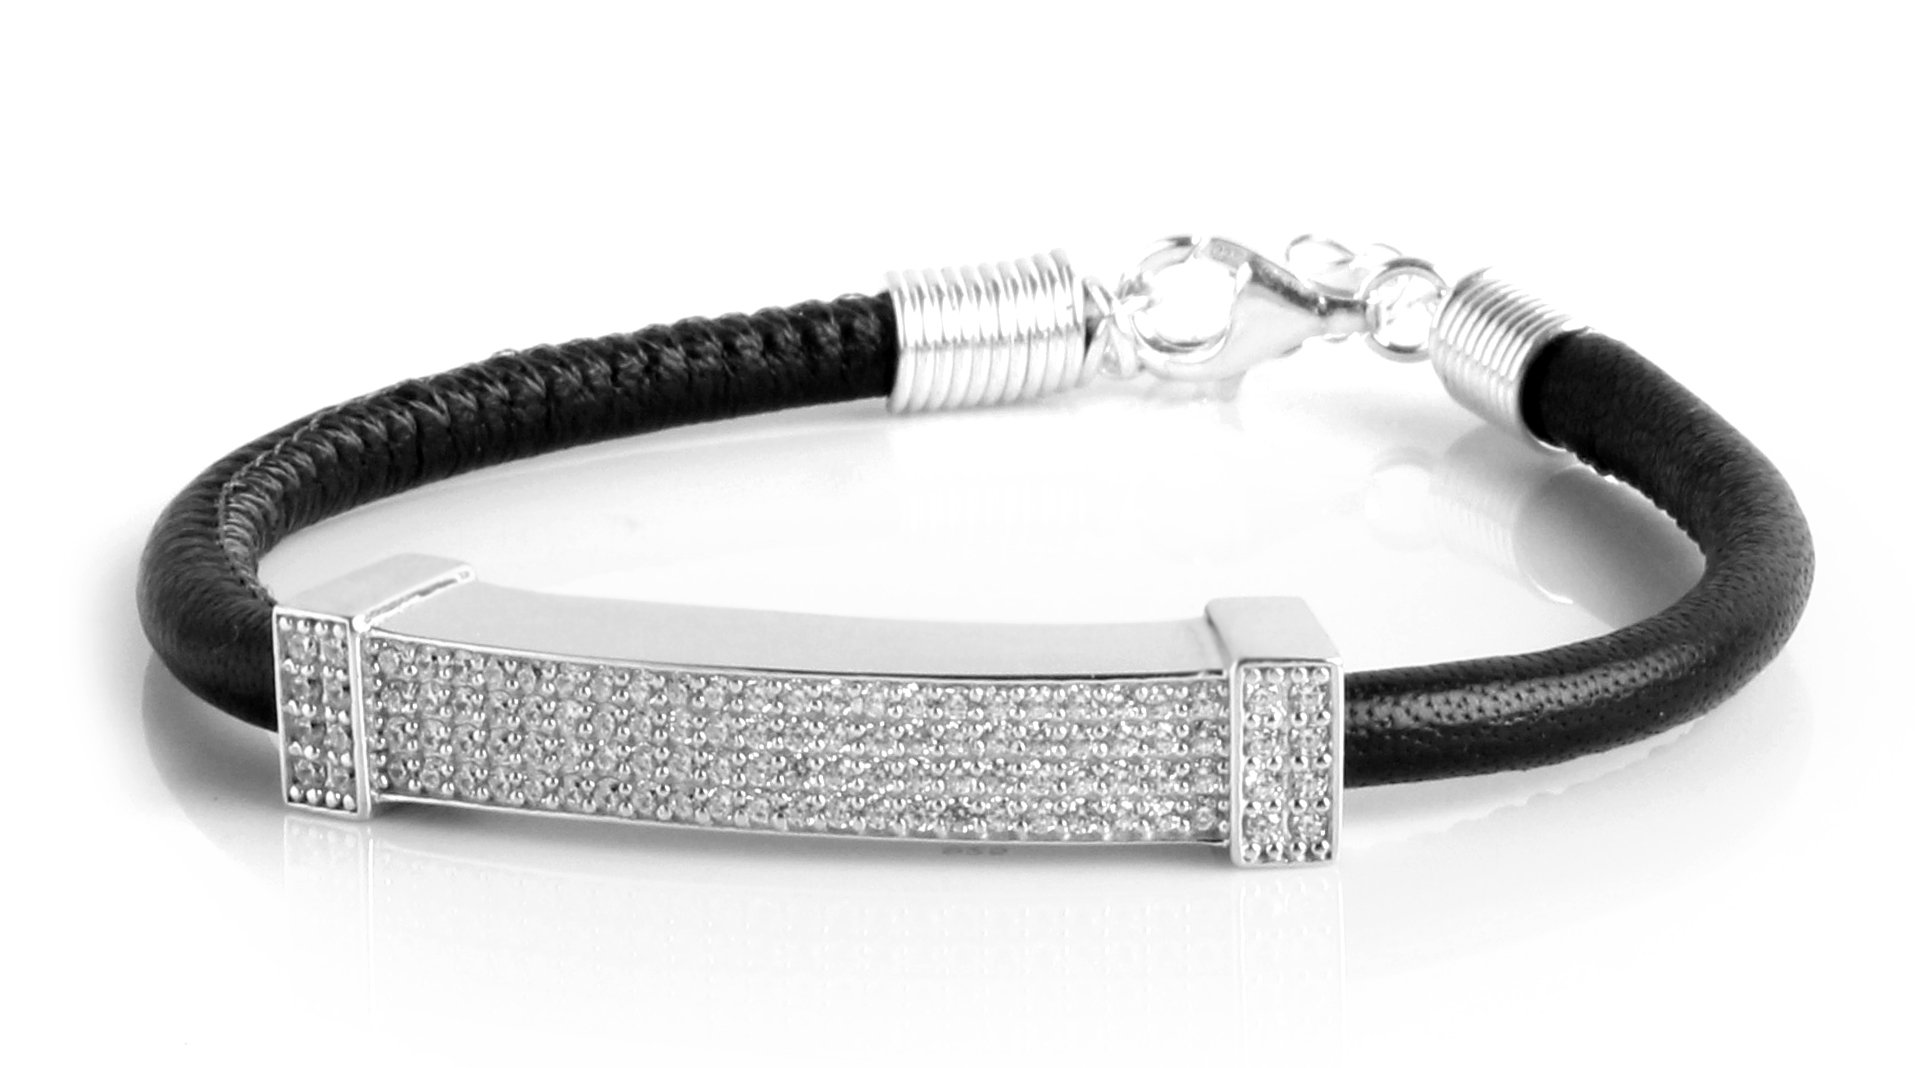 Bracelet Sterling Silver Genuine Leather 4mm Micro Pavé Edition For Womens Find Your Fit Round SB1709W (18)